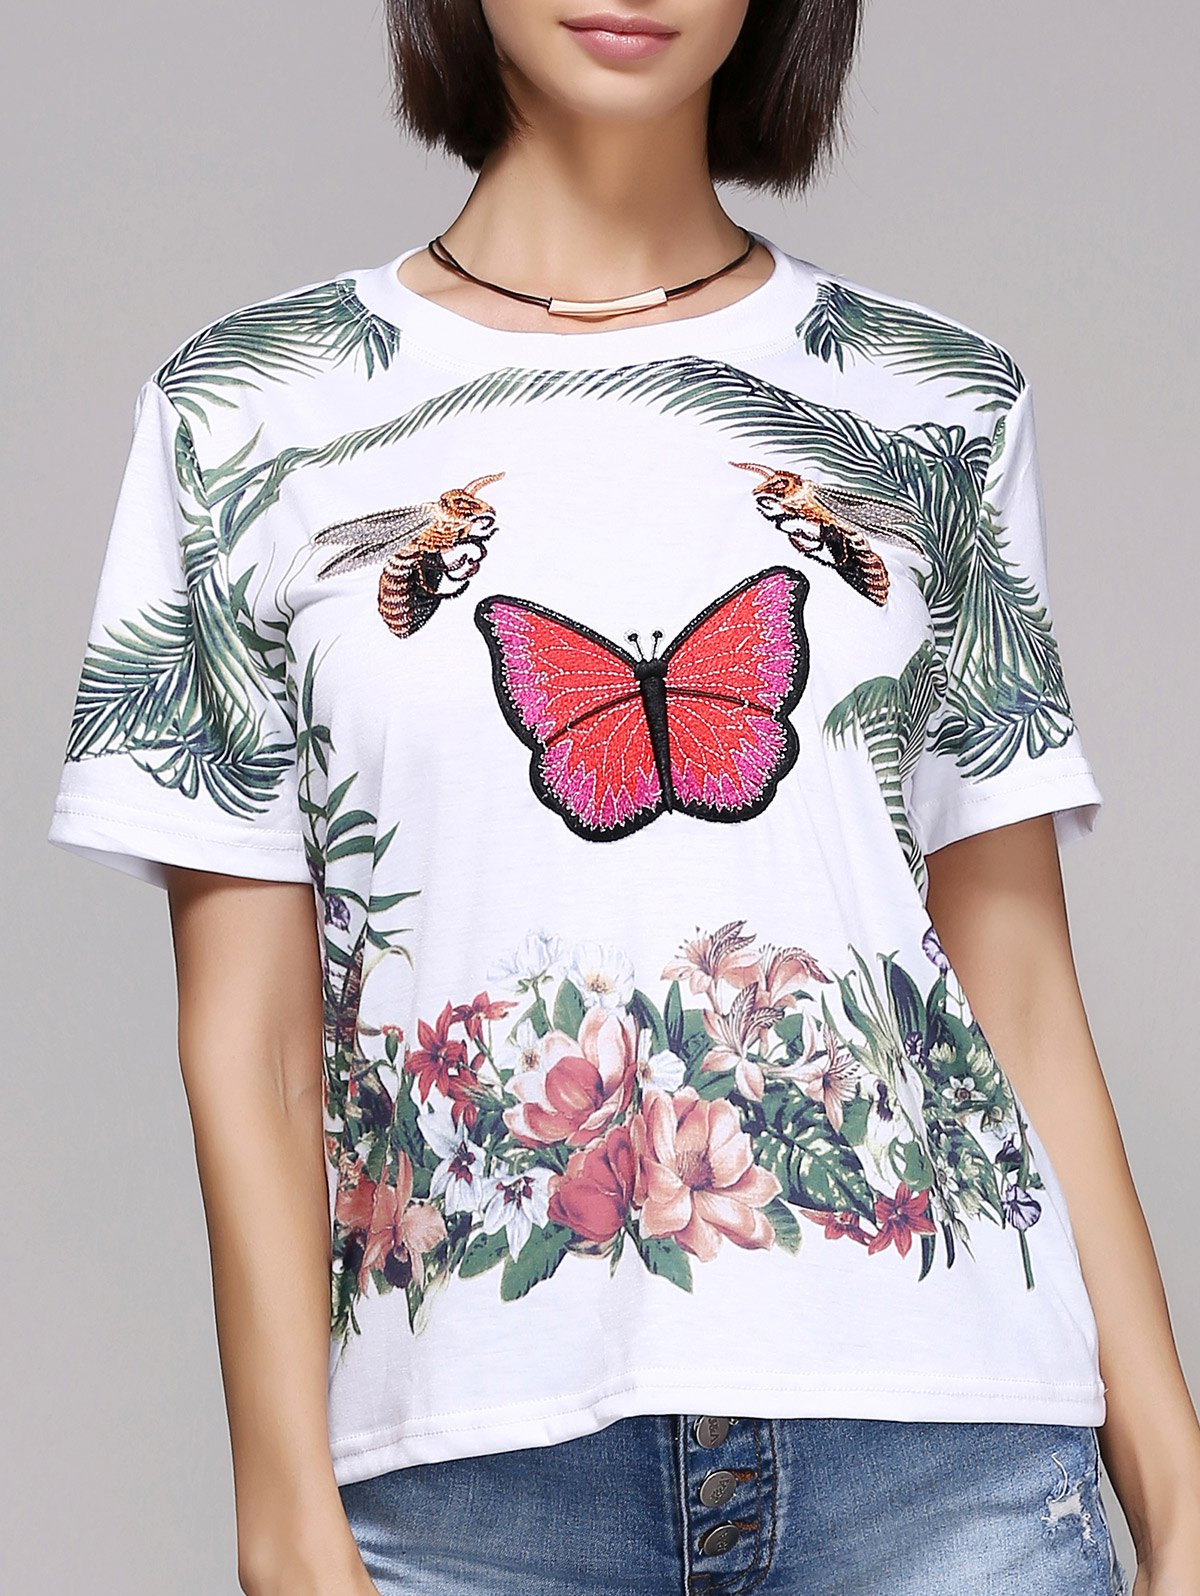 Stylish Butterfly Print Short Sleeve Round Neck T-Shirt For Women стеклянный шар house of seasons d 8см золото узоры 83187зу